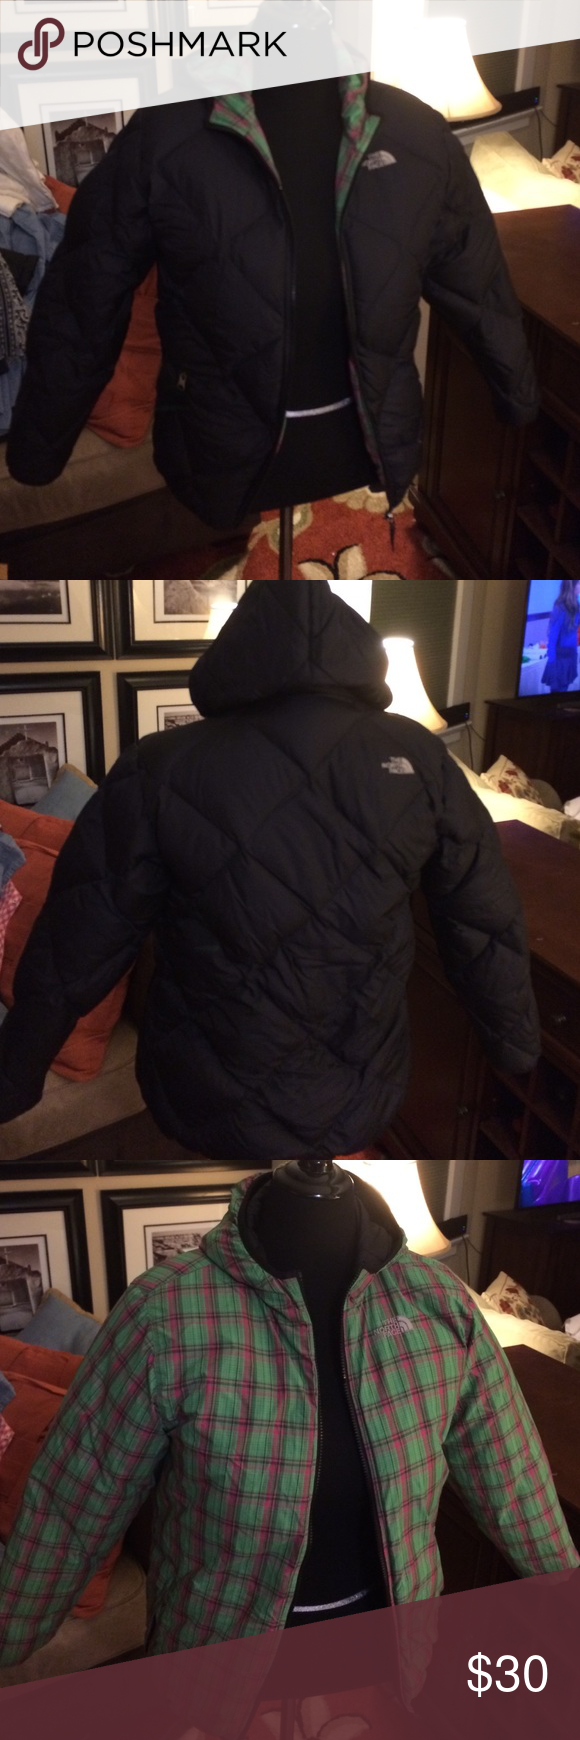 Reversible north face puffer coat Zipper needs repair at the top. Can be done at your dry cleaners. This is why it is so cheap. The North Face Jackets & Coats Puffers